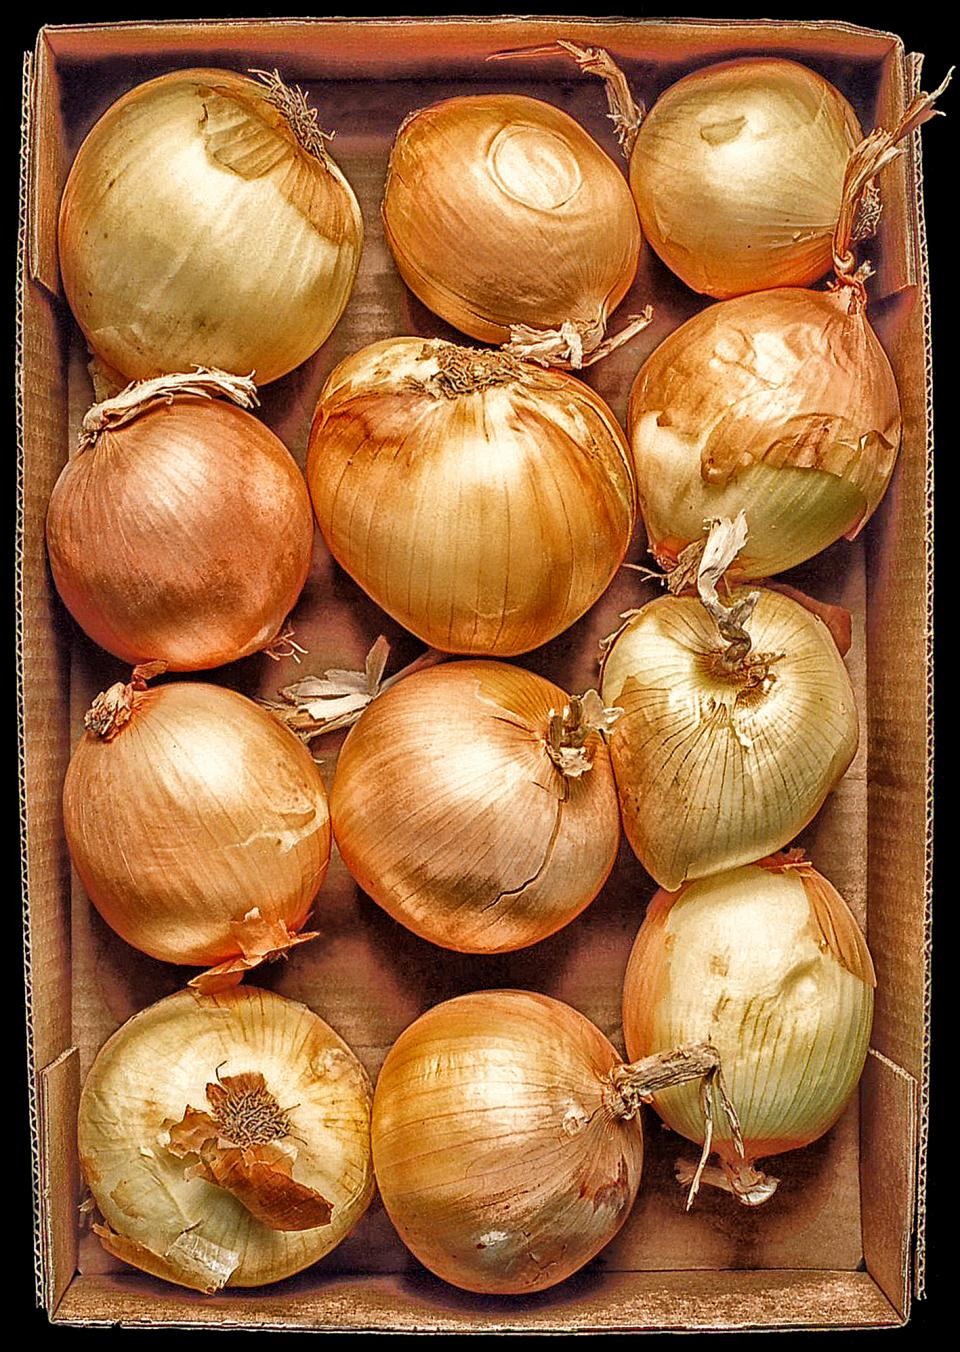 Onions in a Box